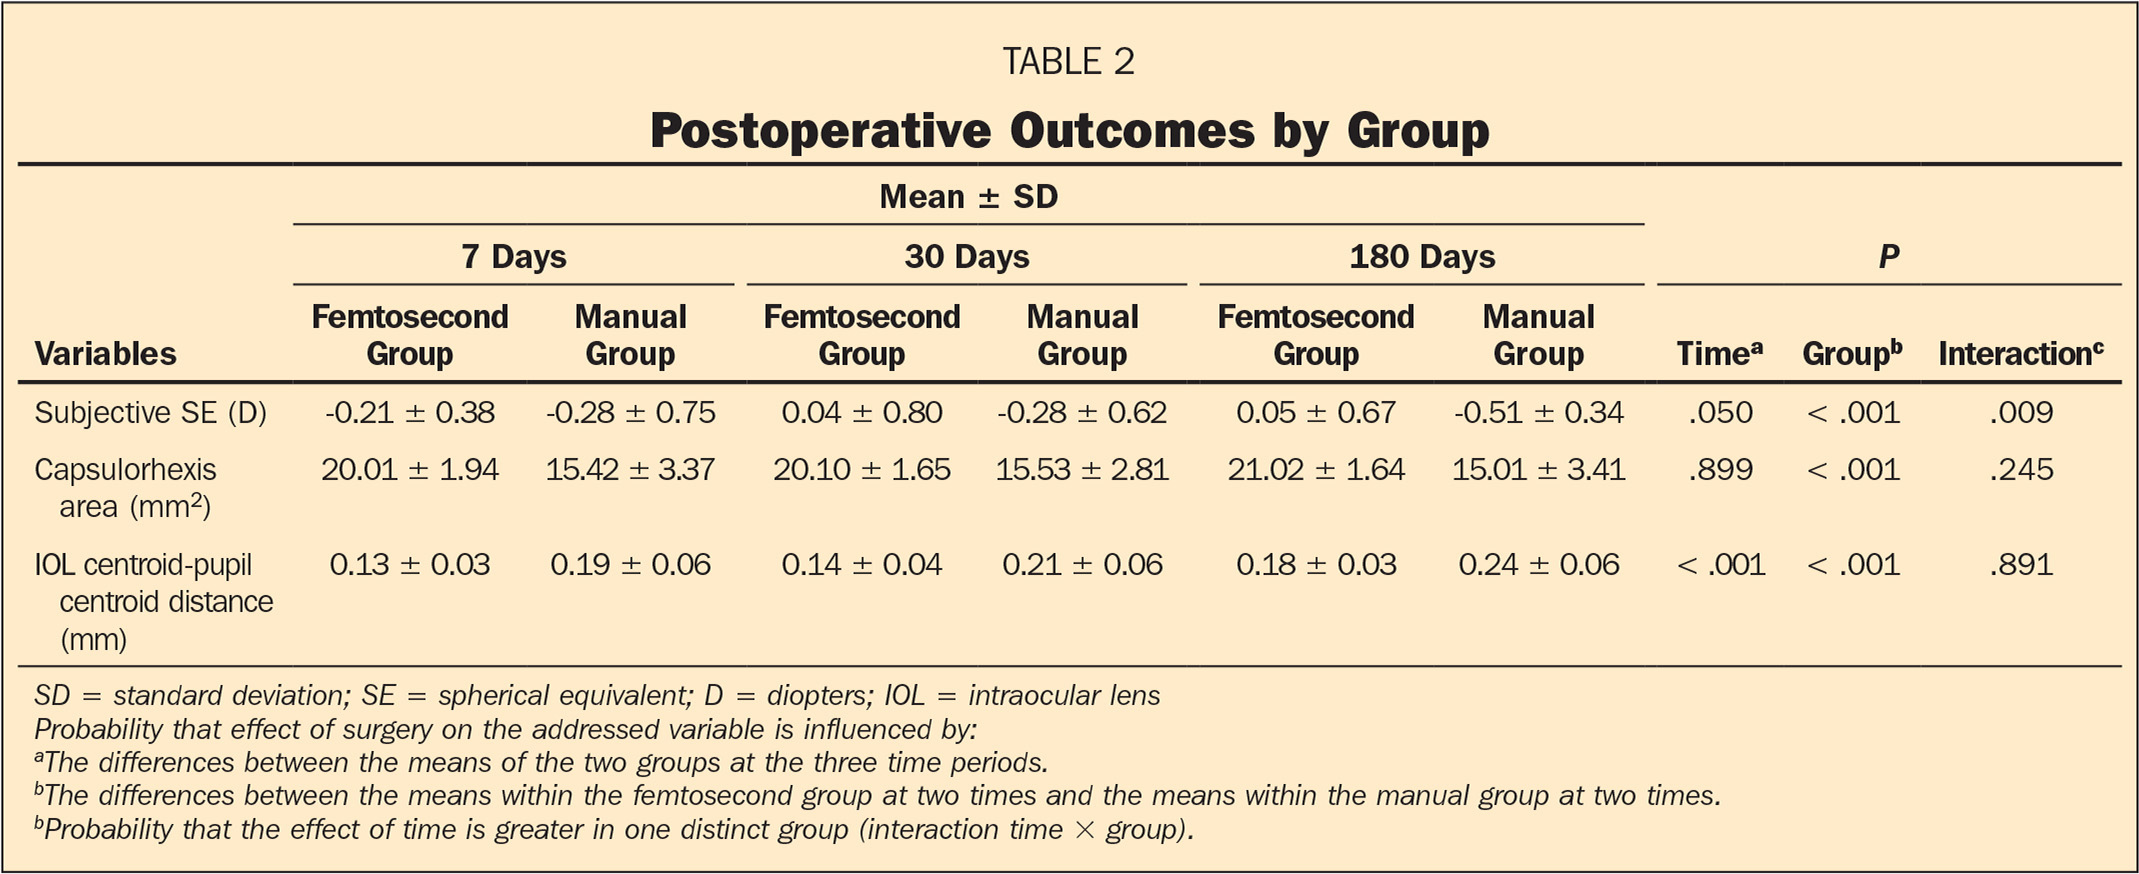 Postoperative Outcomes by Group